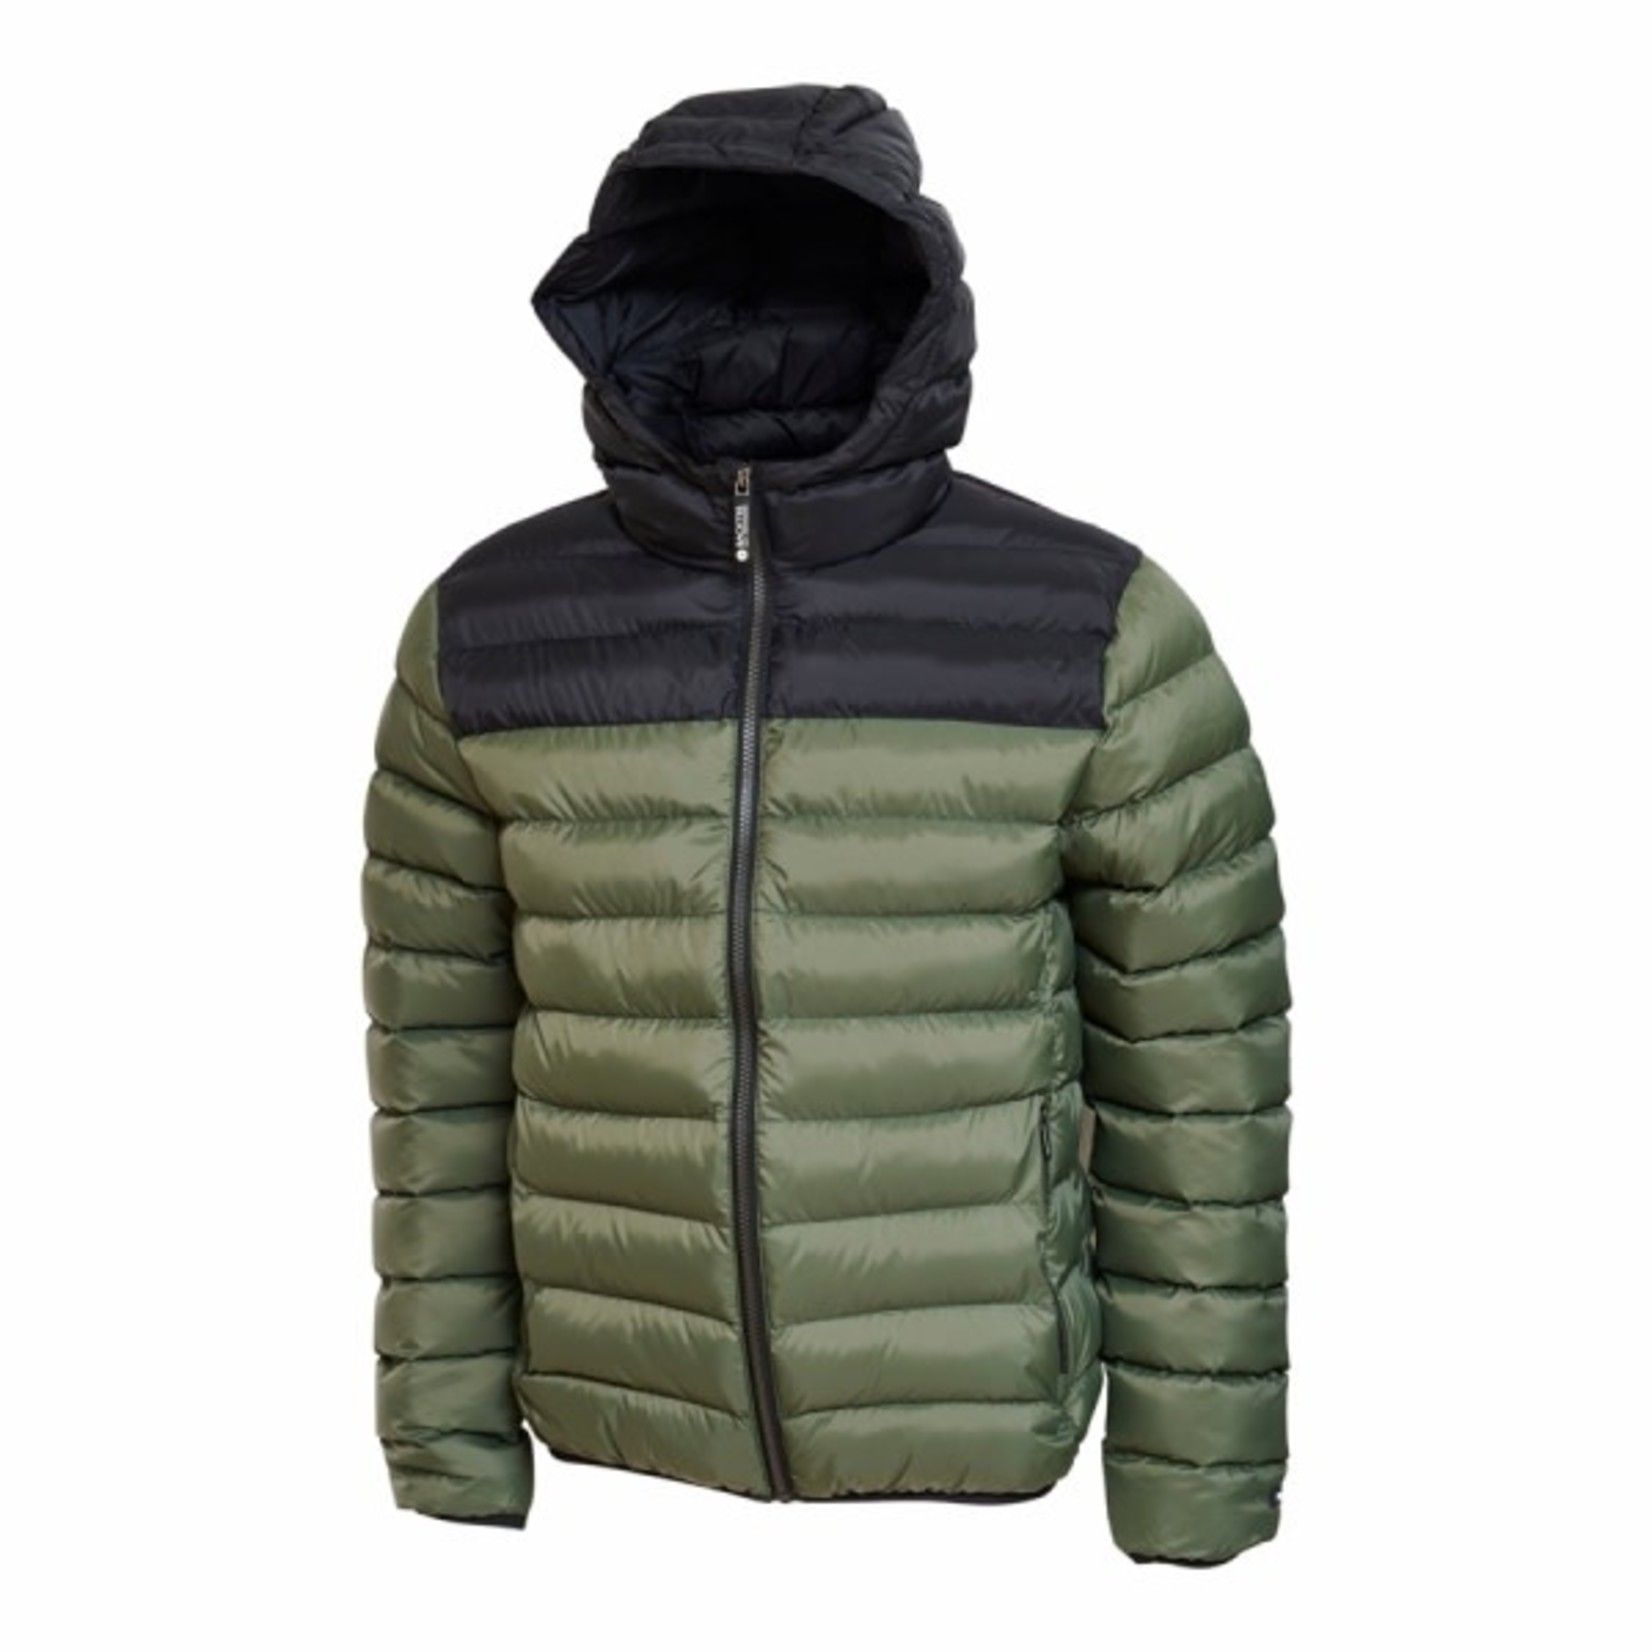 Backtee Backtee Mens Recycled Panel Jacket Beetle (Green)